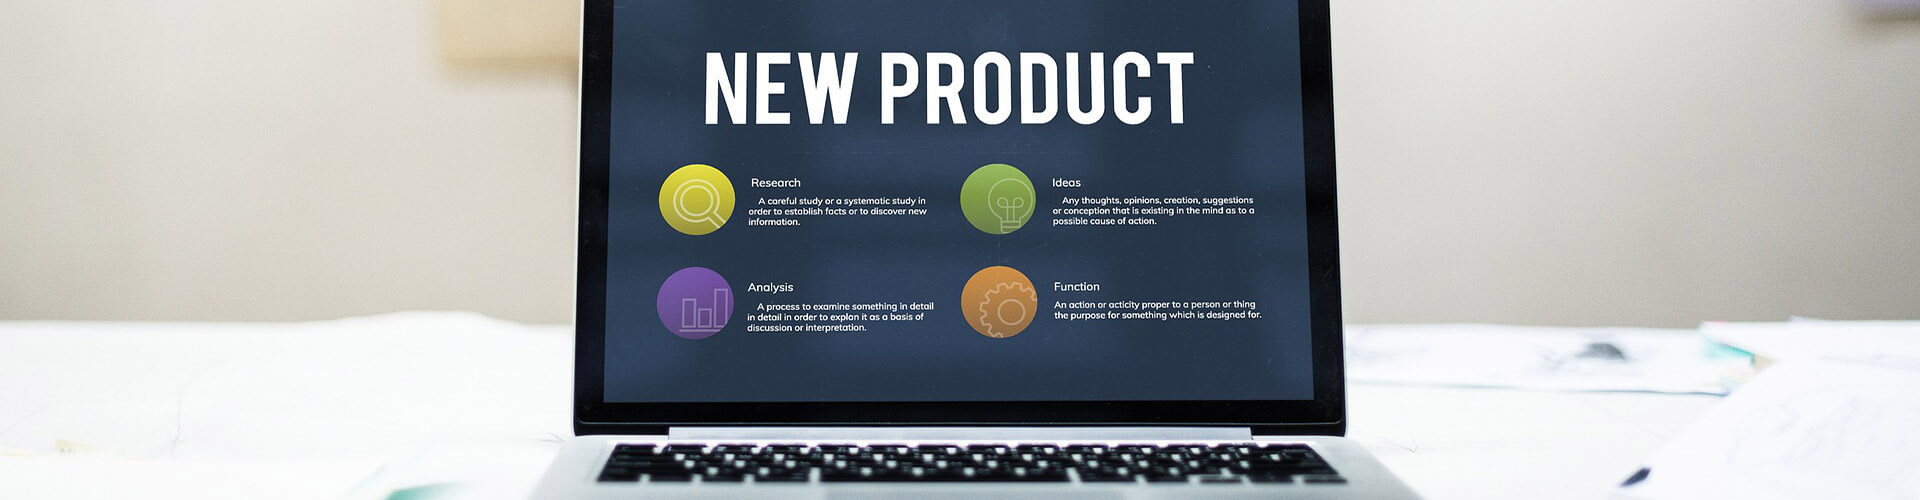 product discription ecommerce